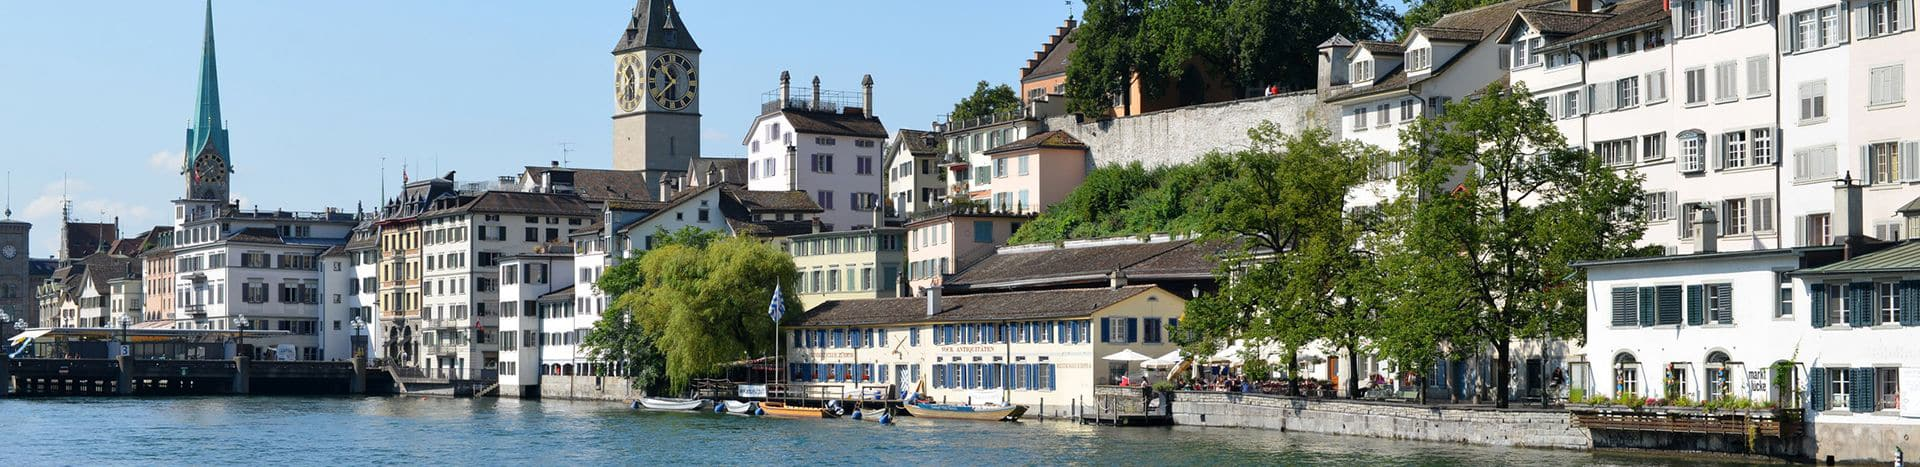 Welcome to Zurich | expats in Switzerland | sgier+partner | swiss immigration+relocation